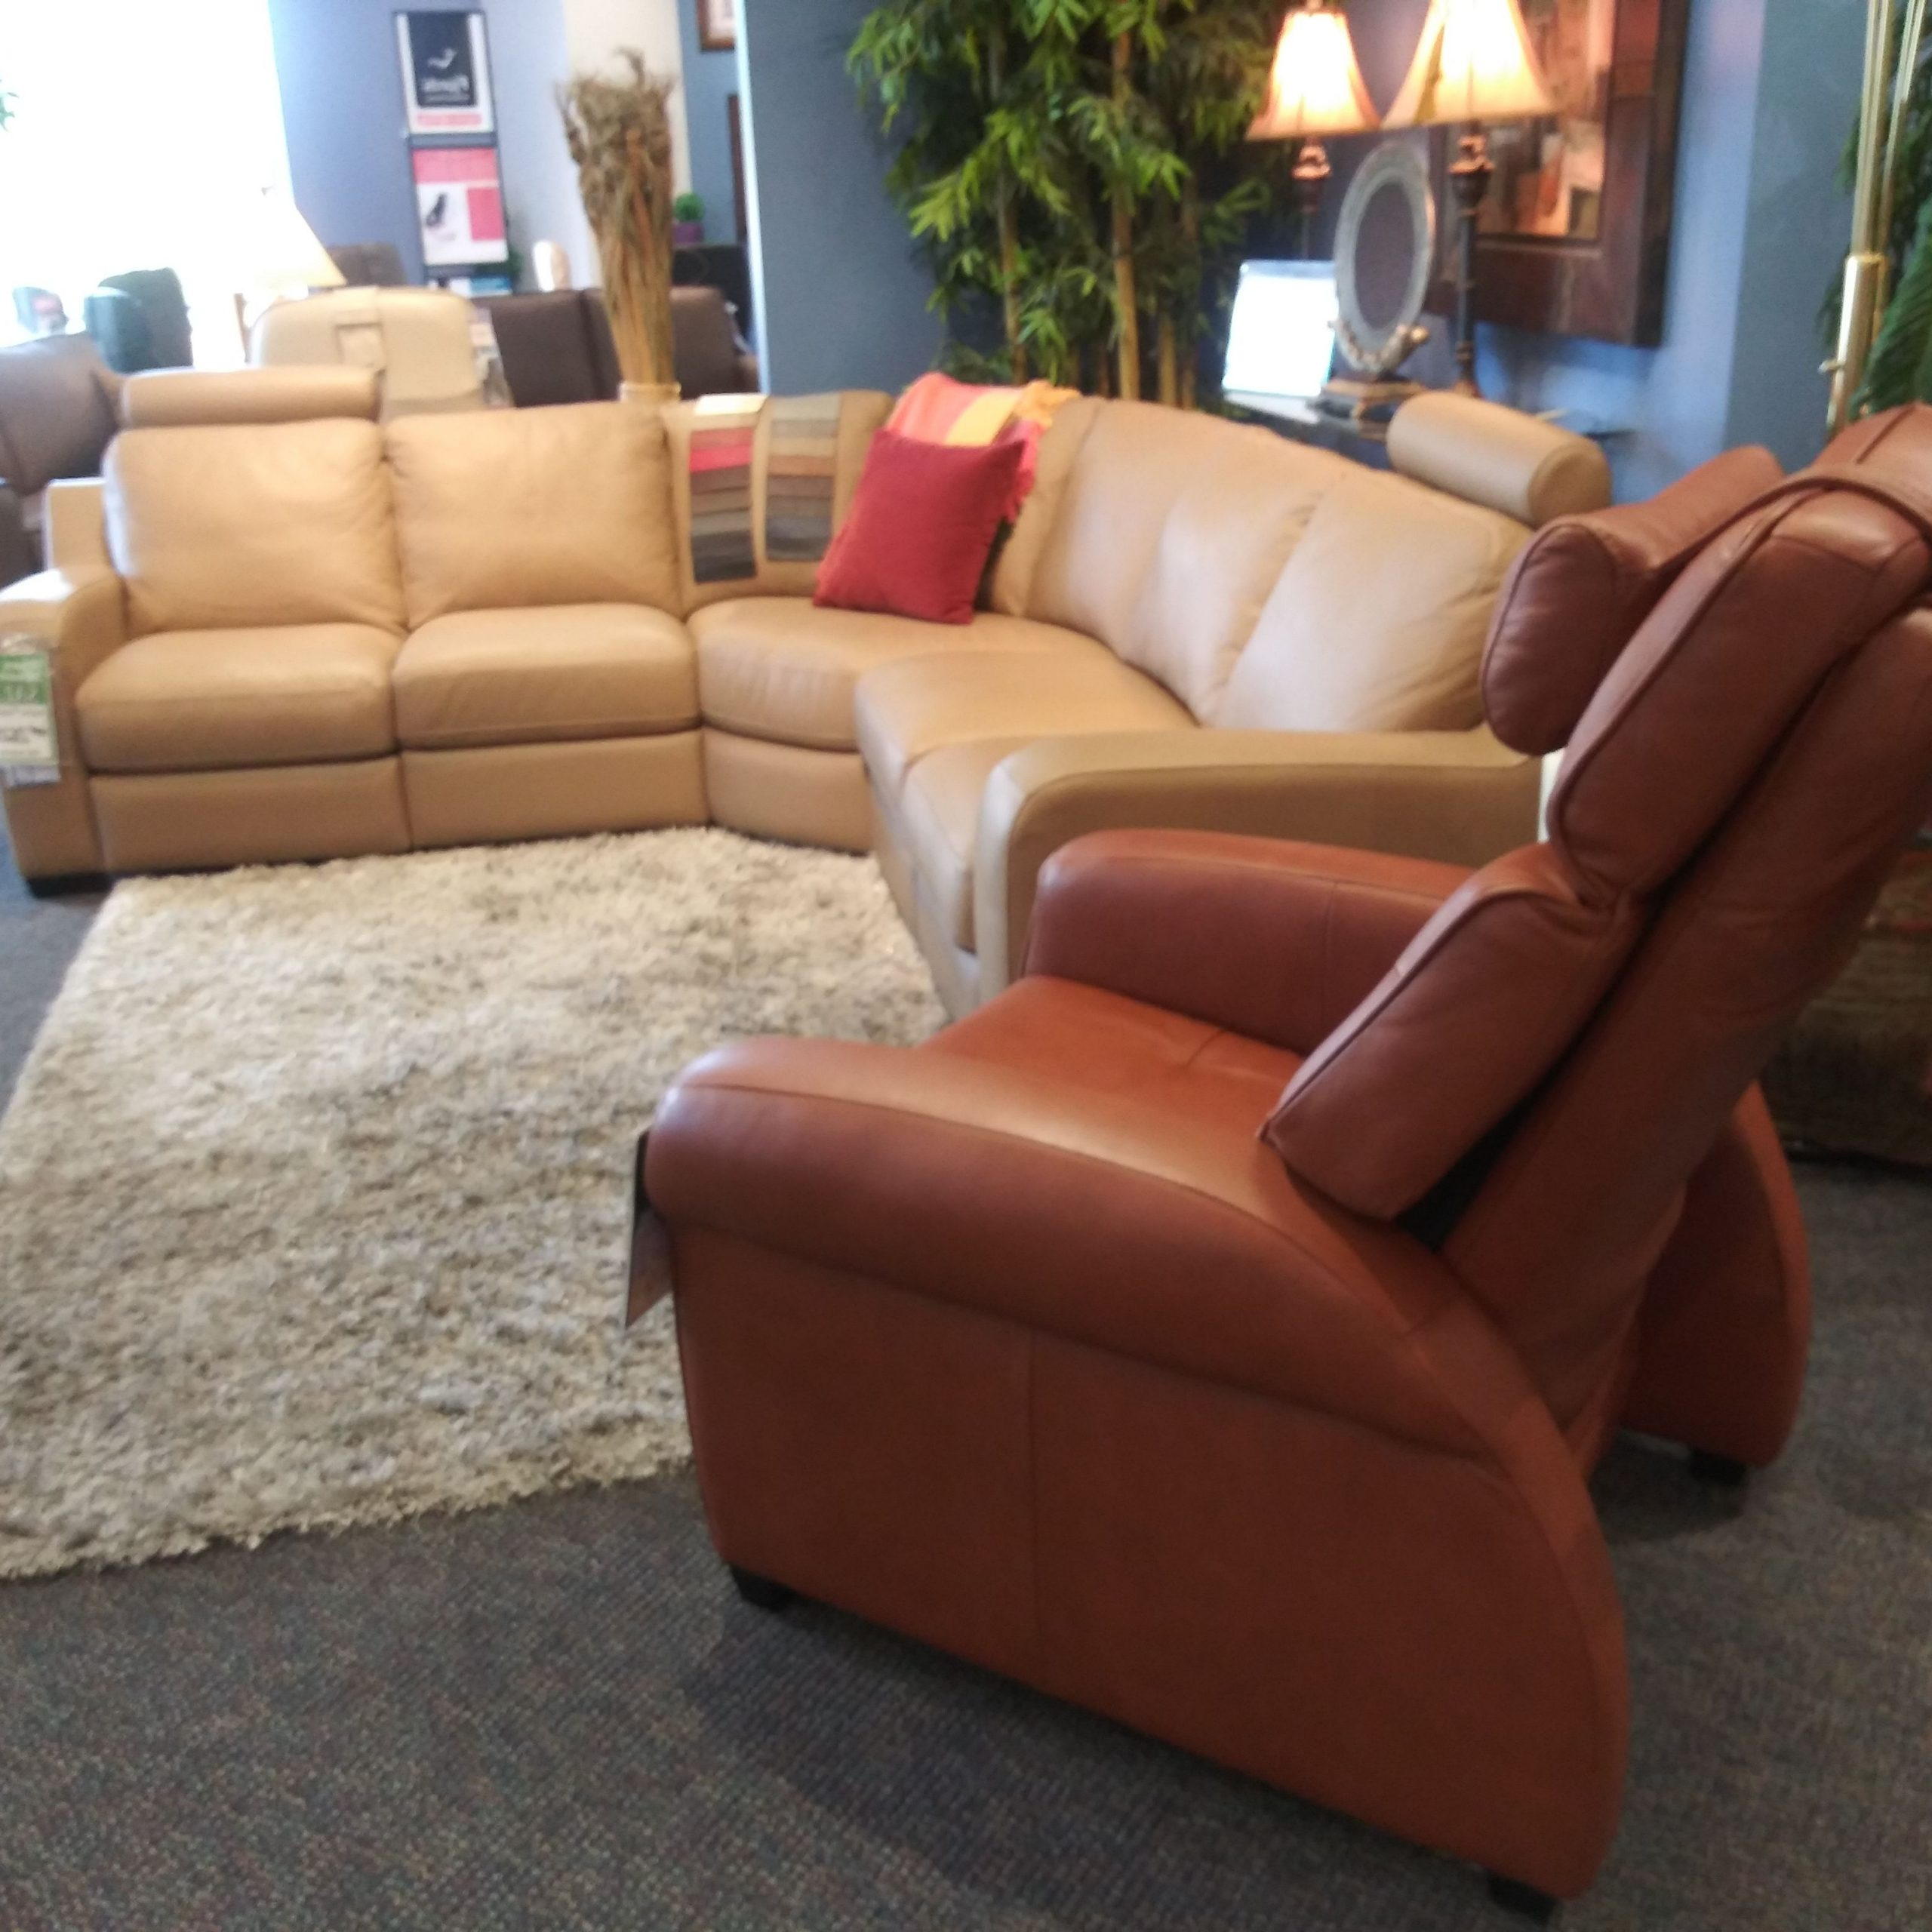 Trendy Trailblazer Gray Leather Power Reclining Sofas For Pinleather Ave. On Leather Ave (View 12 of 15)